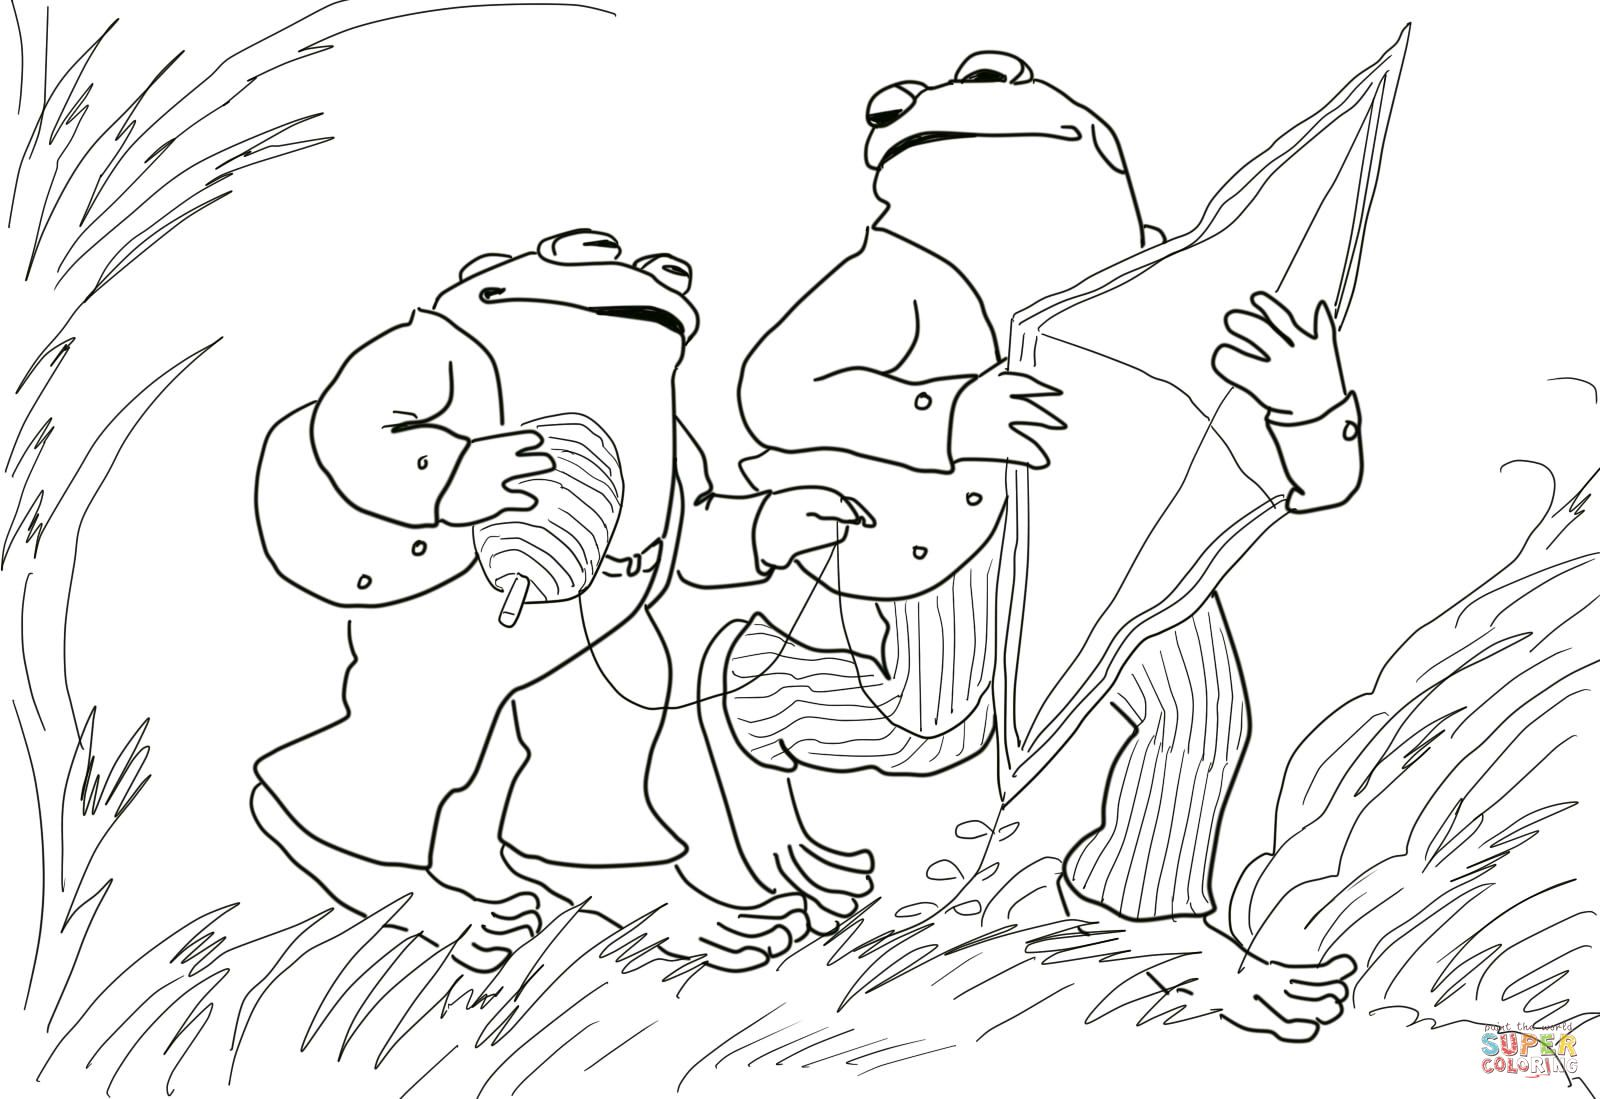 Frog And Toad Coloring Pages Frog And Toad Coloring Pages Super Coloring Pages